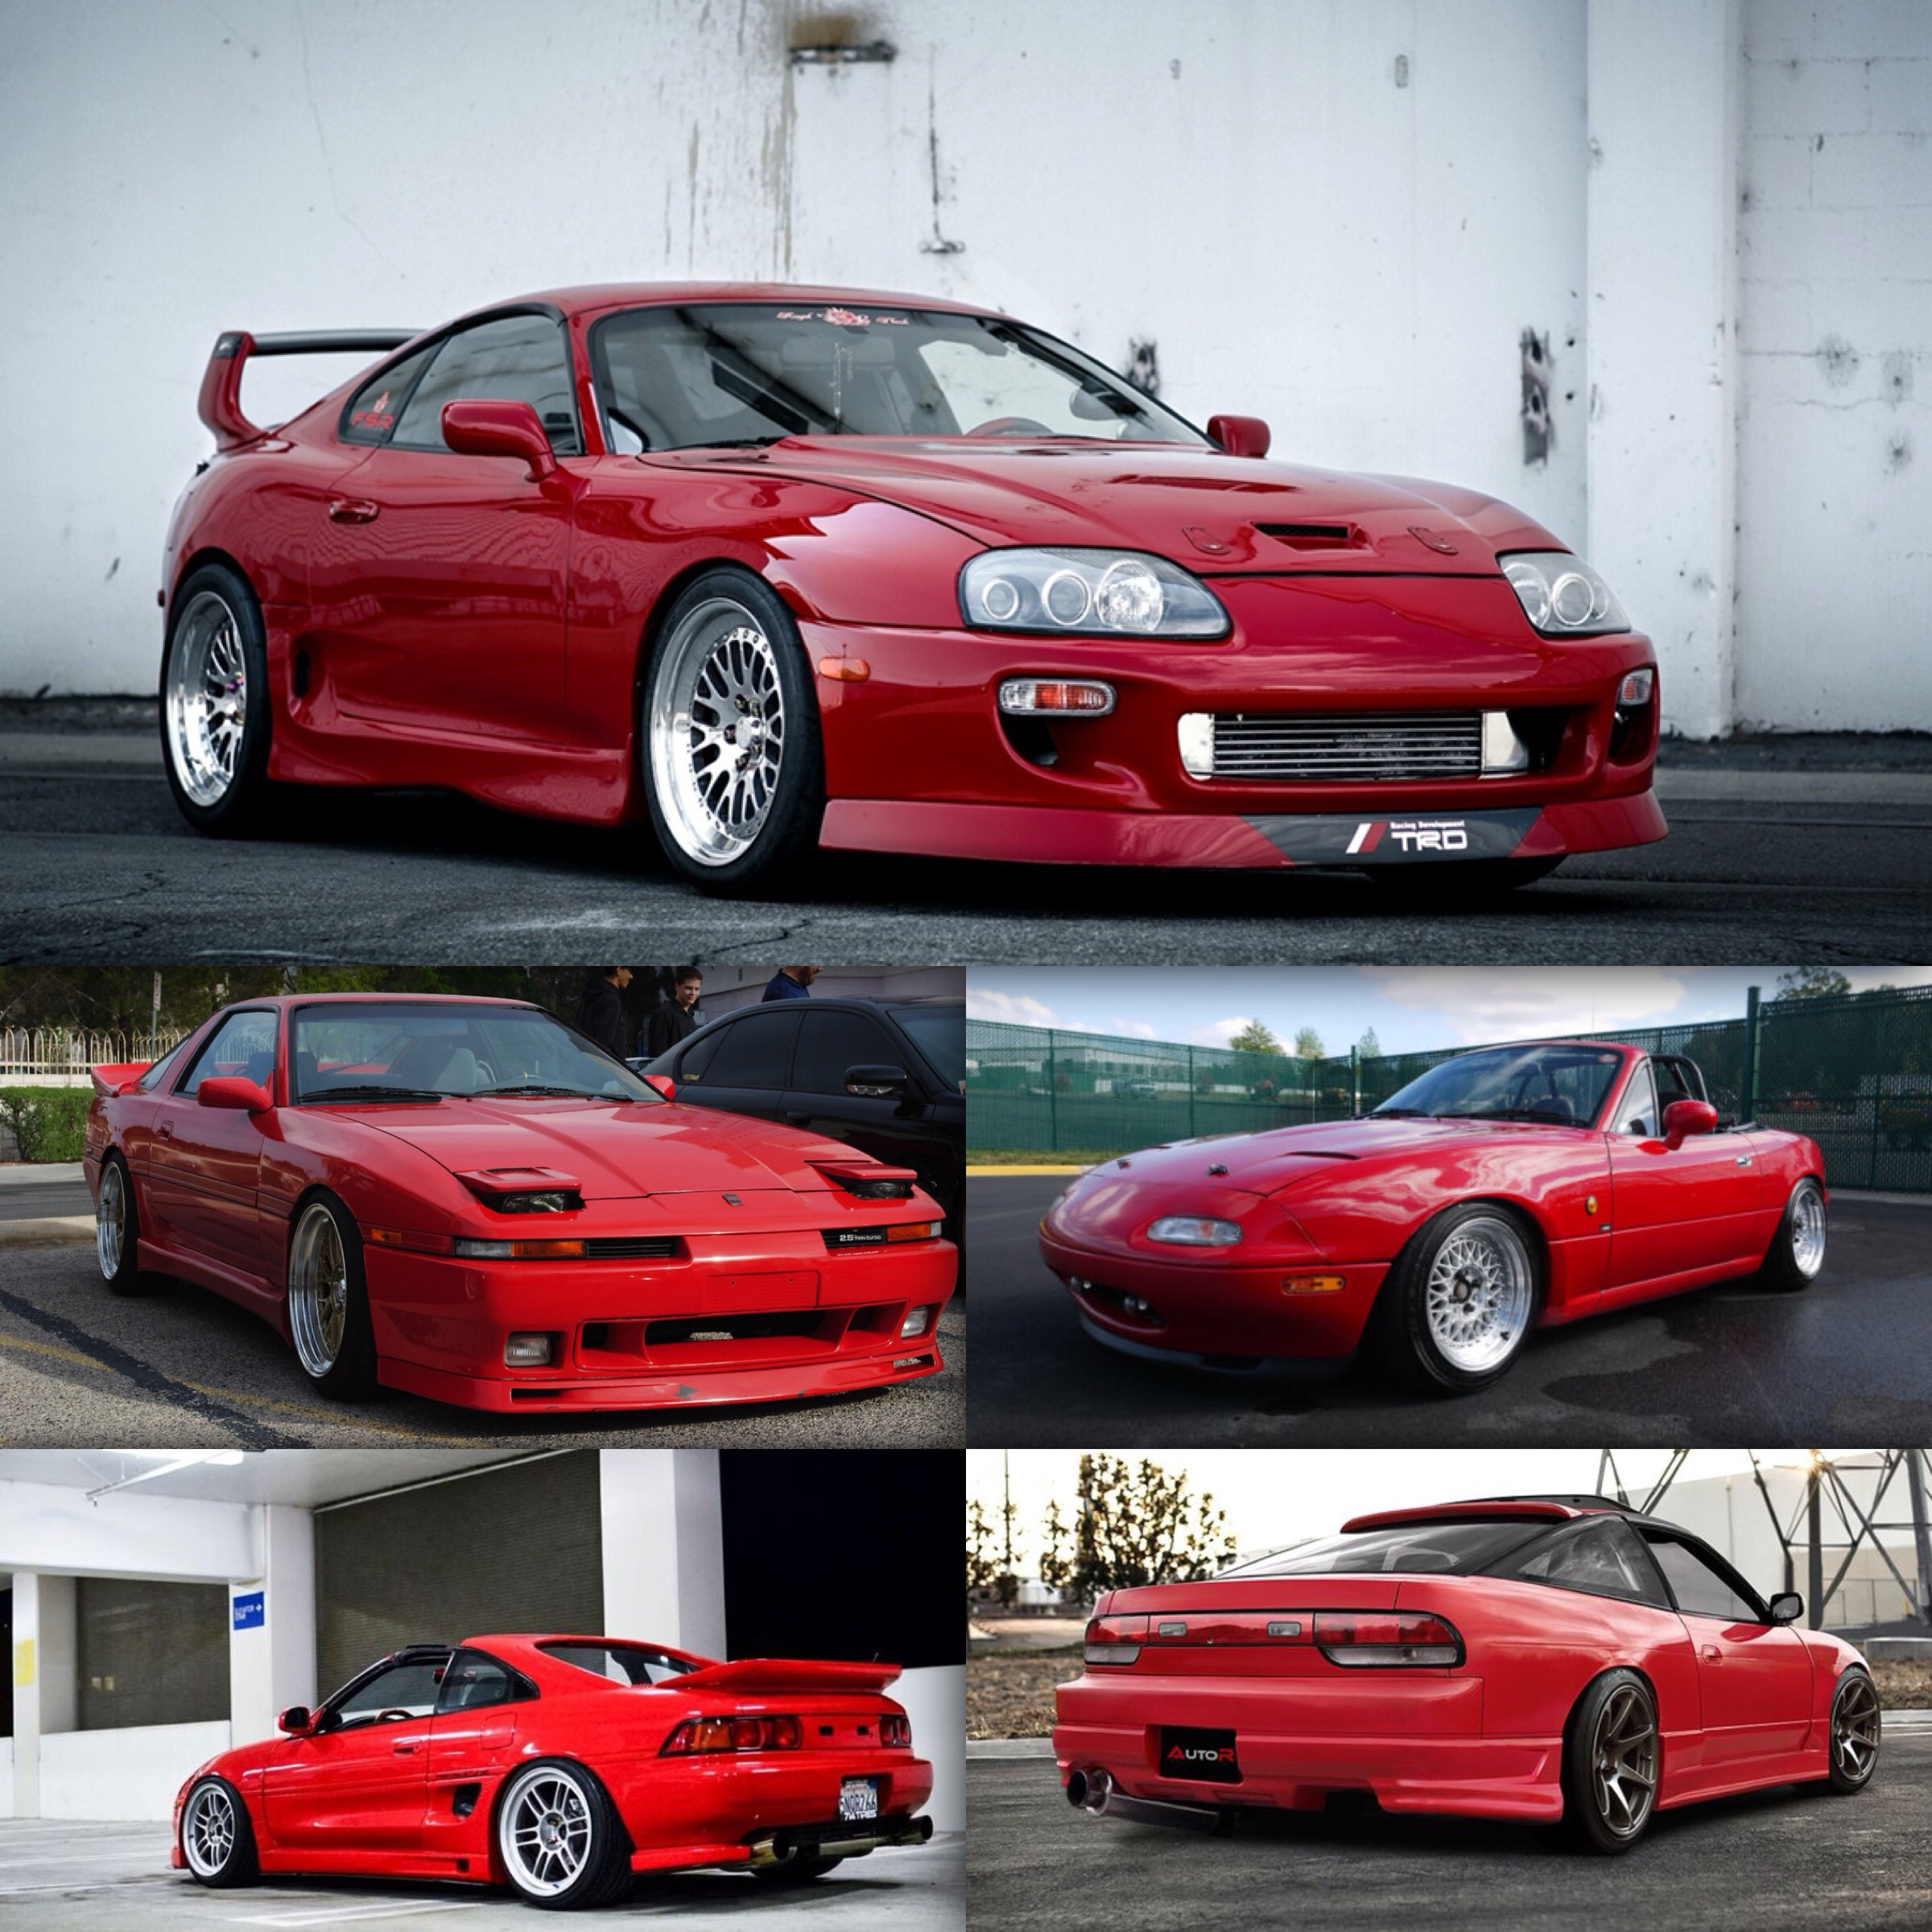 What Is Your Top 5 Japanise Cars? (or Just Your Top 5 Favorite Cars) Mine  Are: 1.MK4 Supra 2.MK3 Supra 3.MR2 4.200SX 5.MX5 Hard To Tell Whats My  Favorite ...